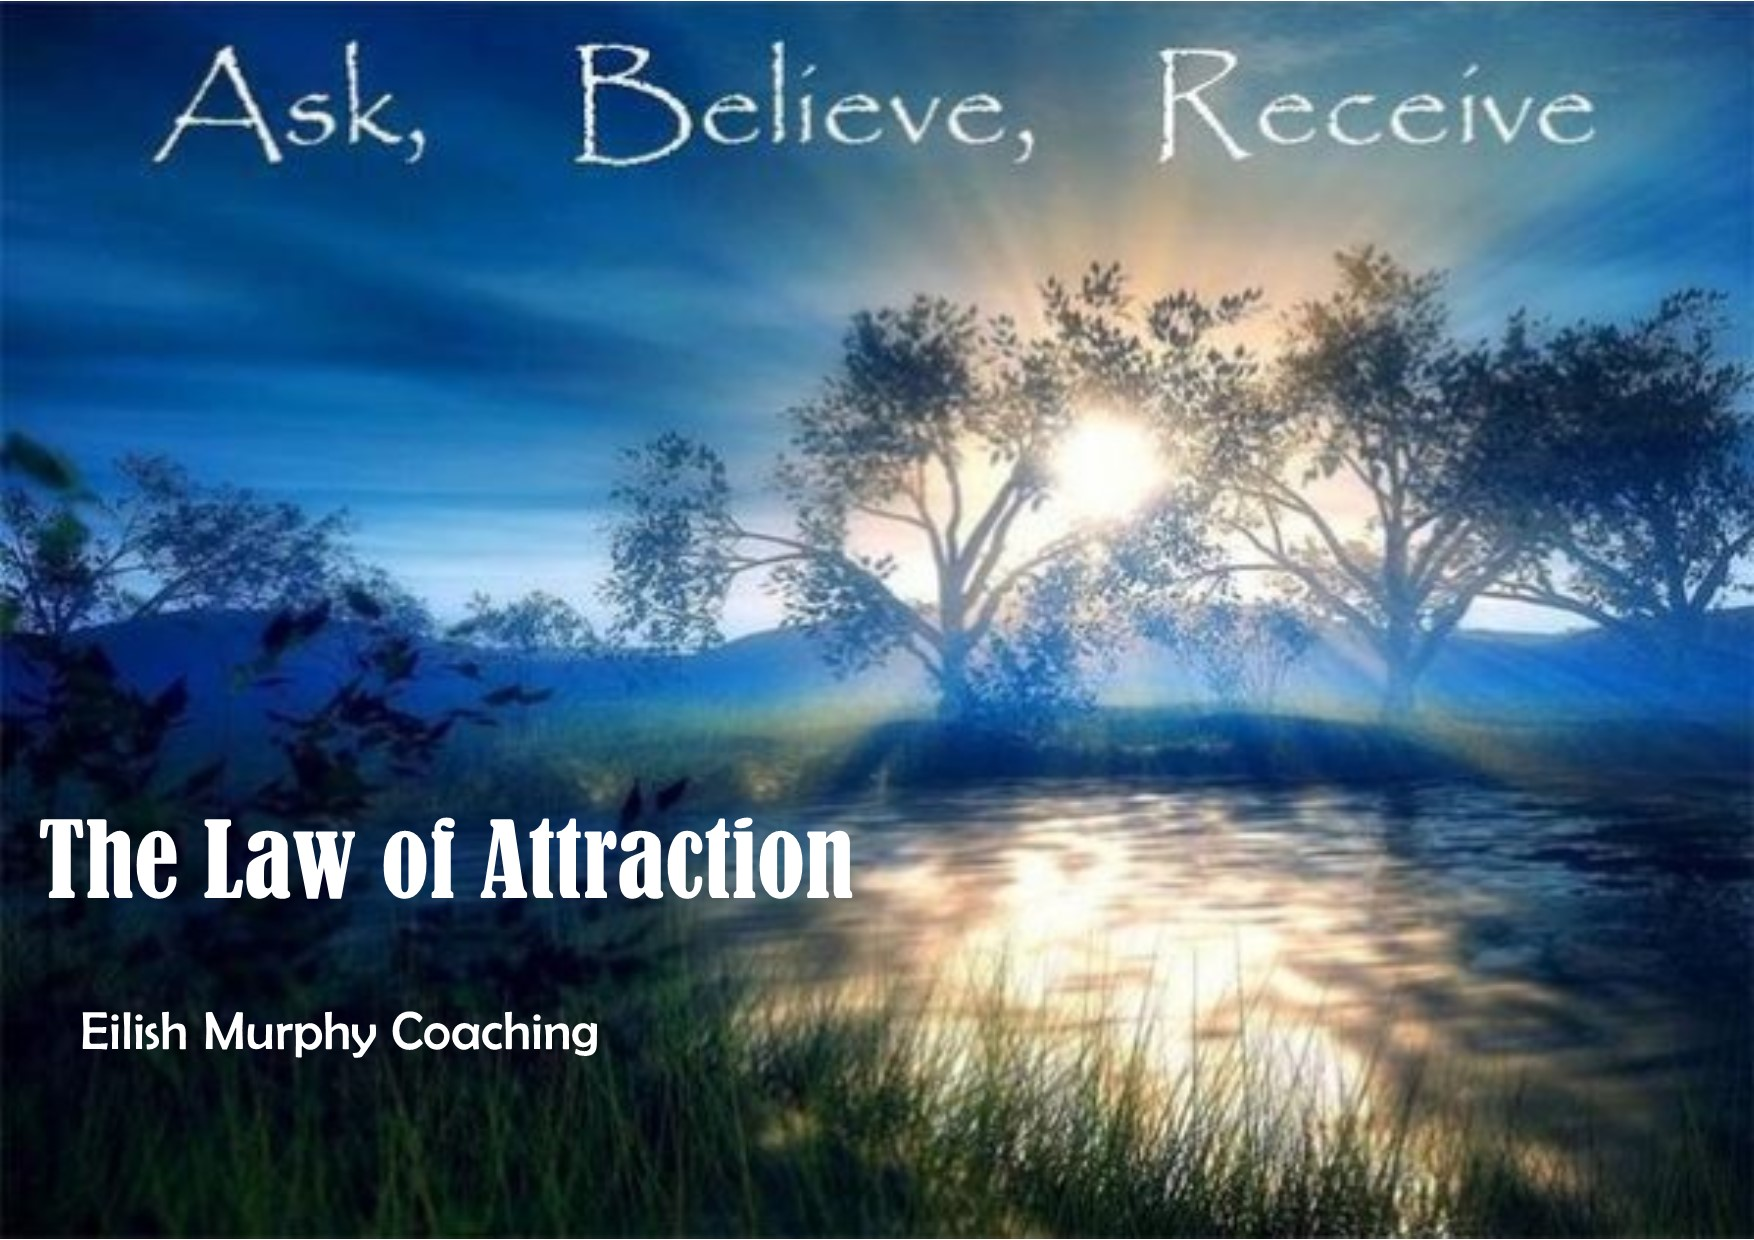 the law of attraction talk image